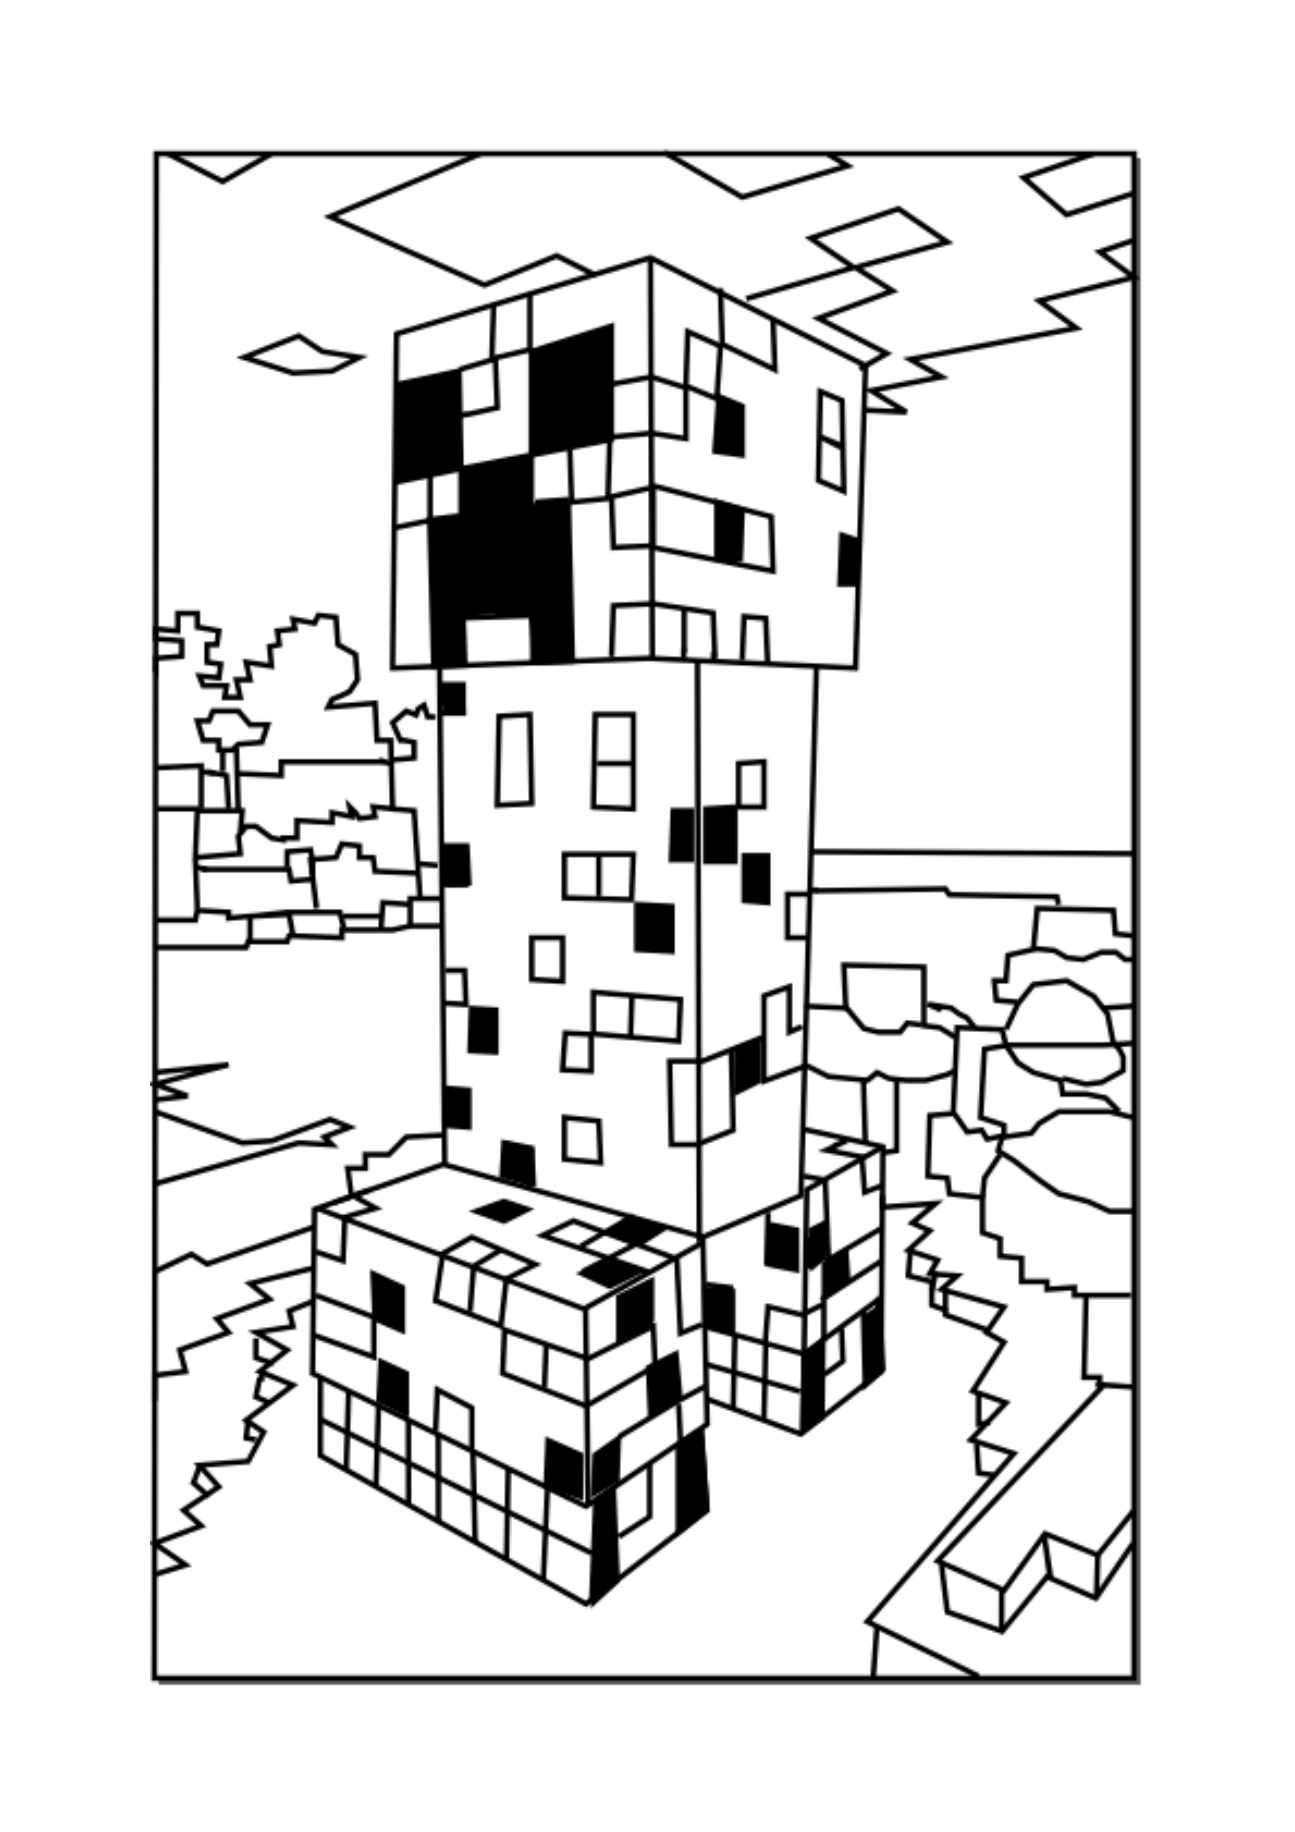 coloring minecraft pages minecraft coloring pages best coloring pages for kids minecraft pages coloring